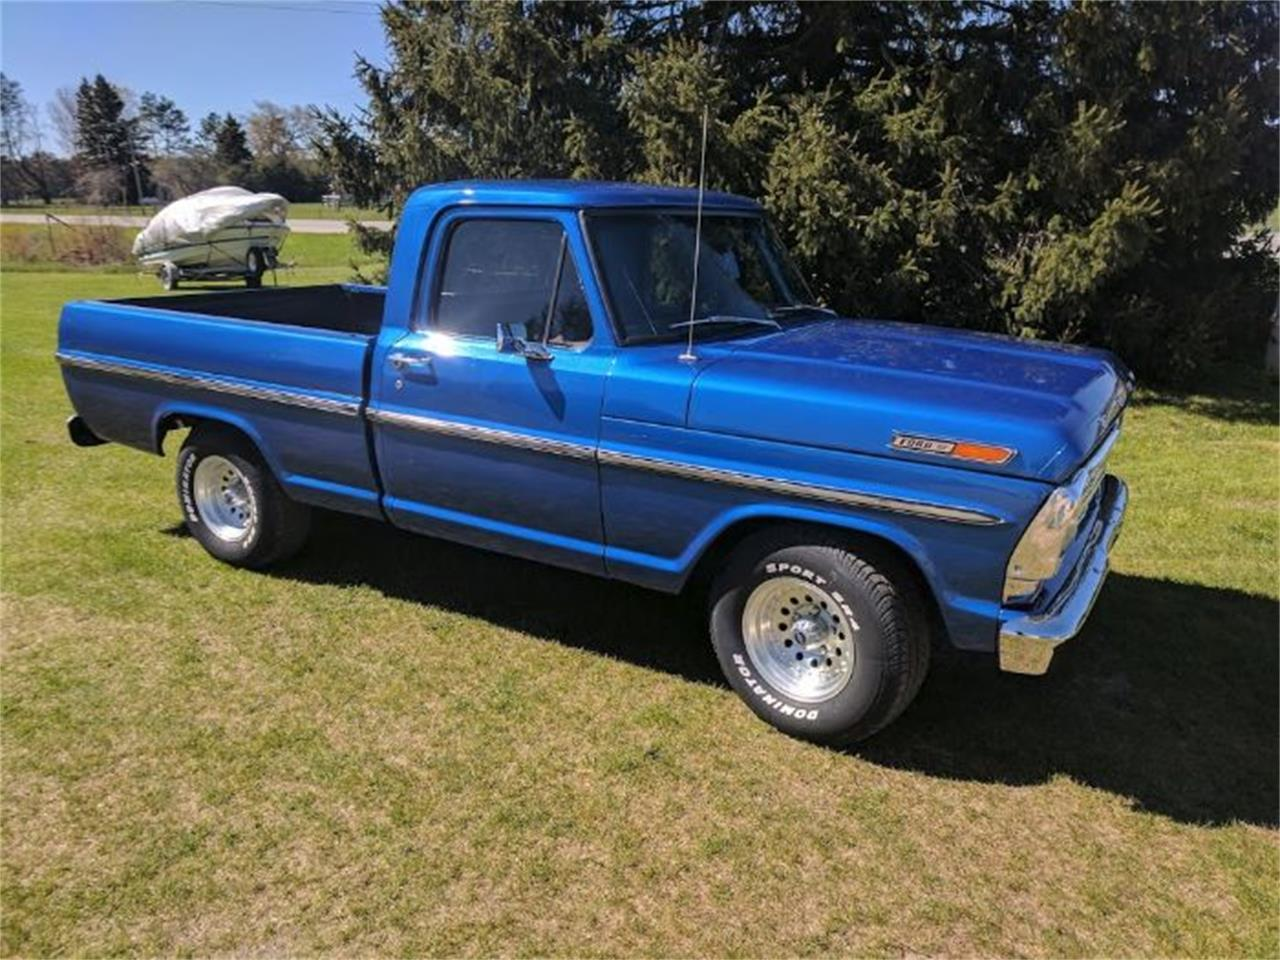 Large picture of 69 f100 l2jq